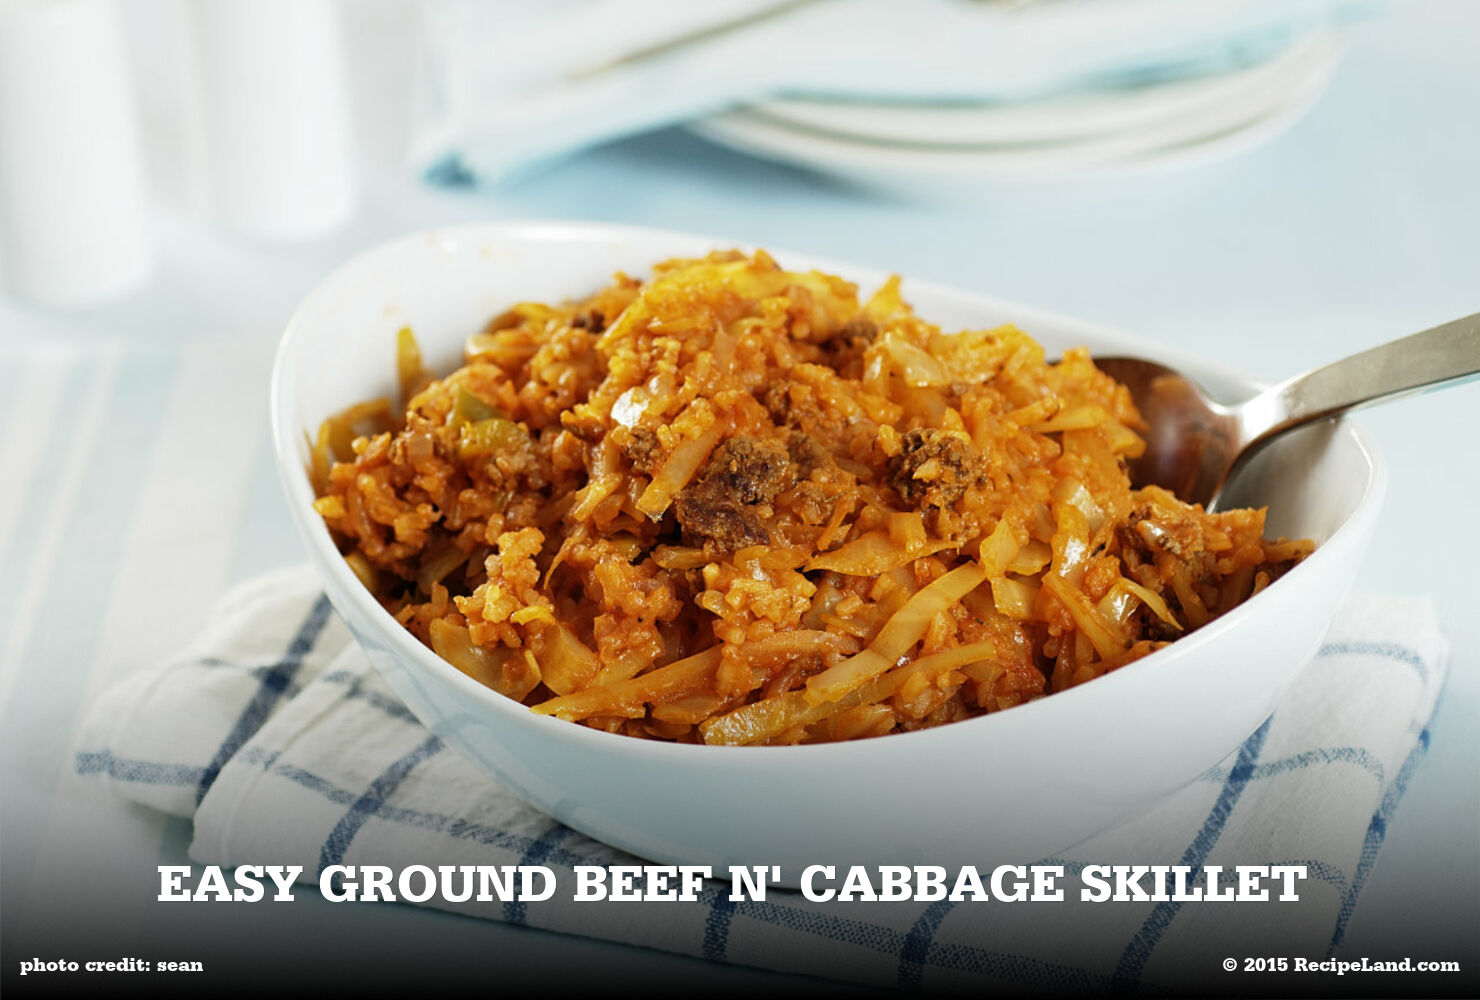 Easy Ground Beef n' Cabbage Skillet